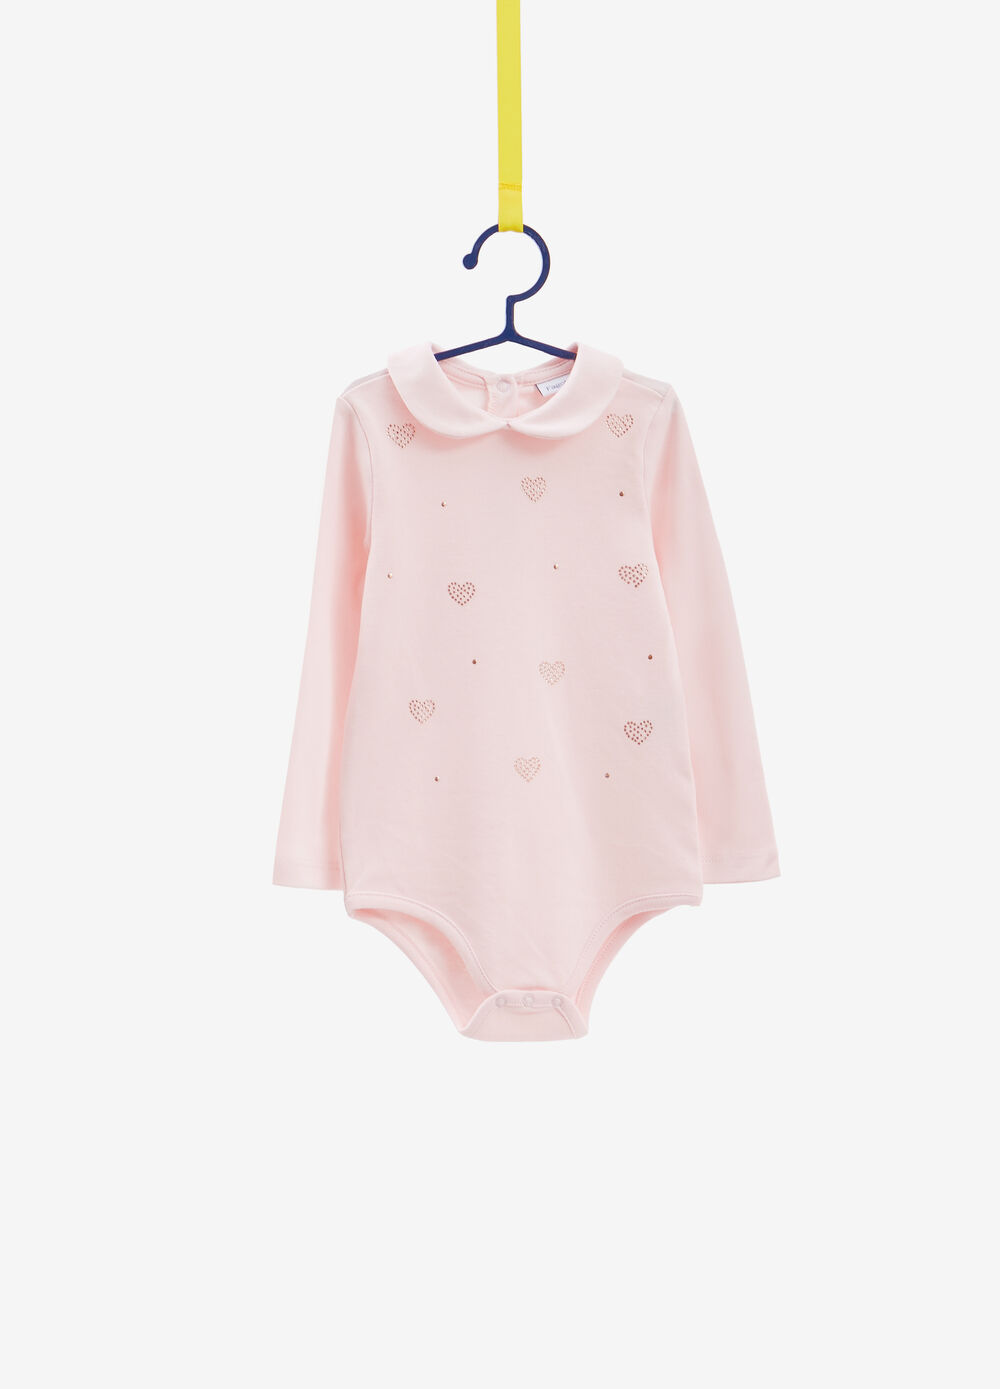 100% cotton bodysuit with heart-shaped diamantés and studs